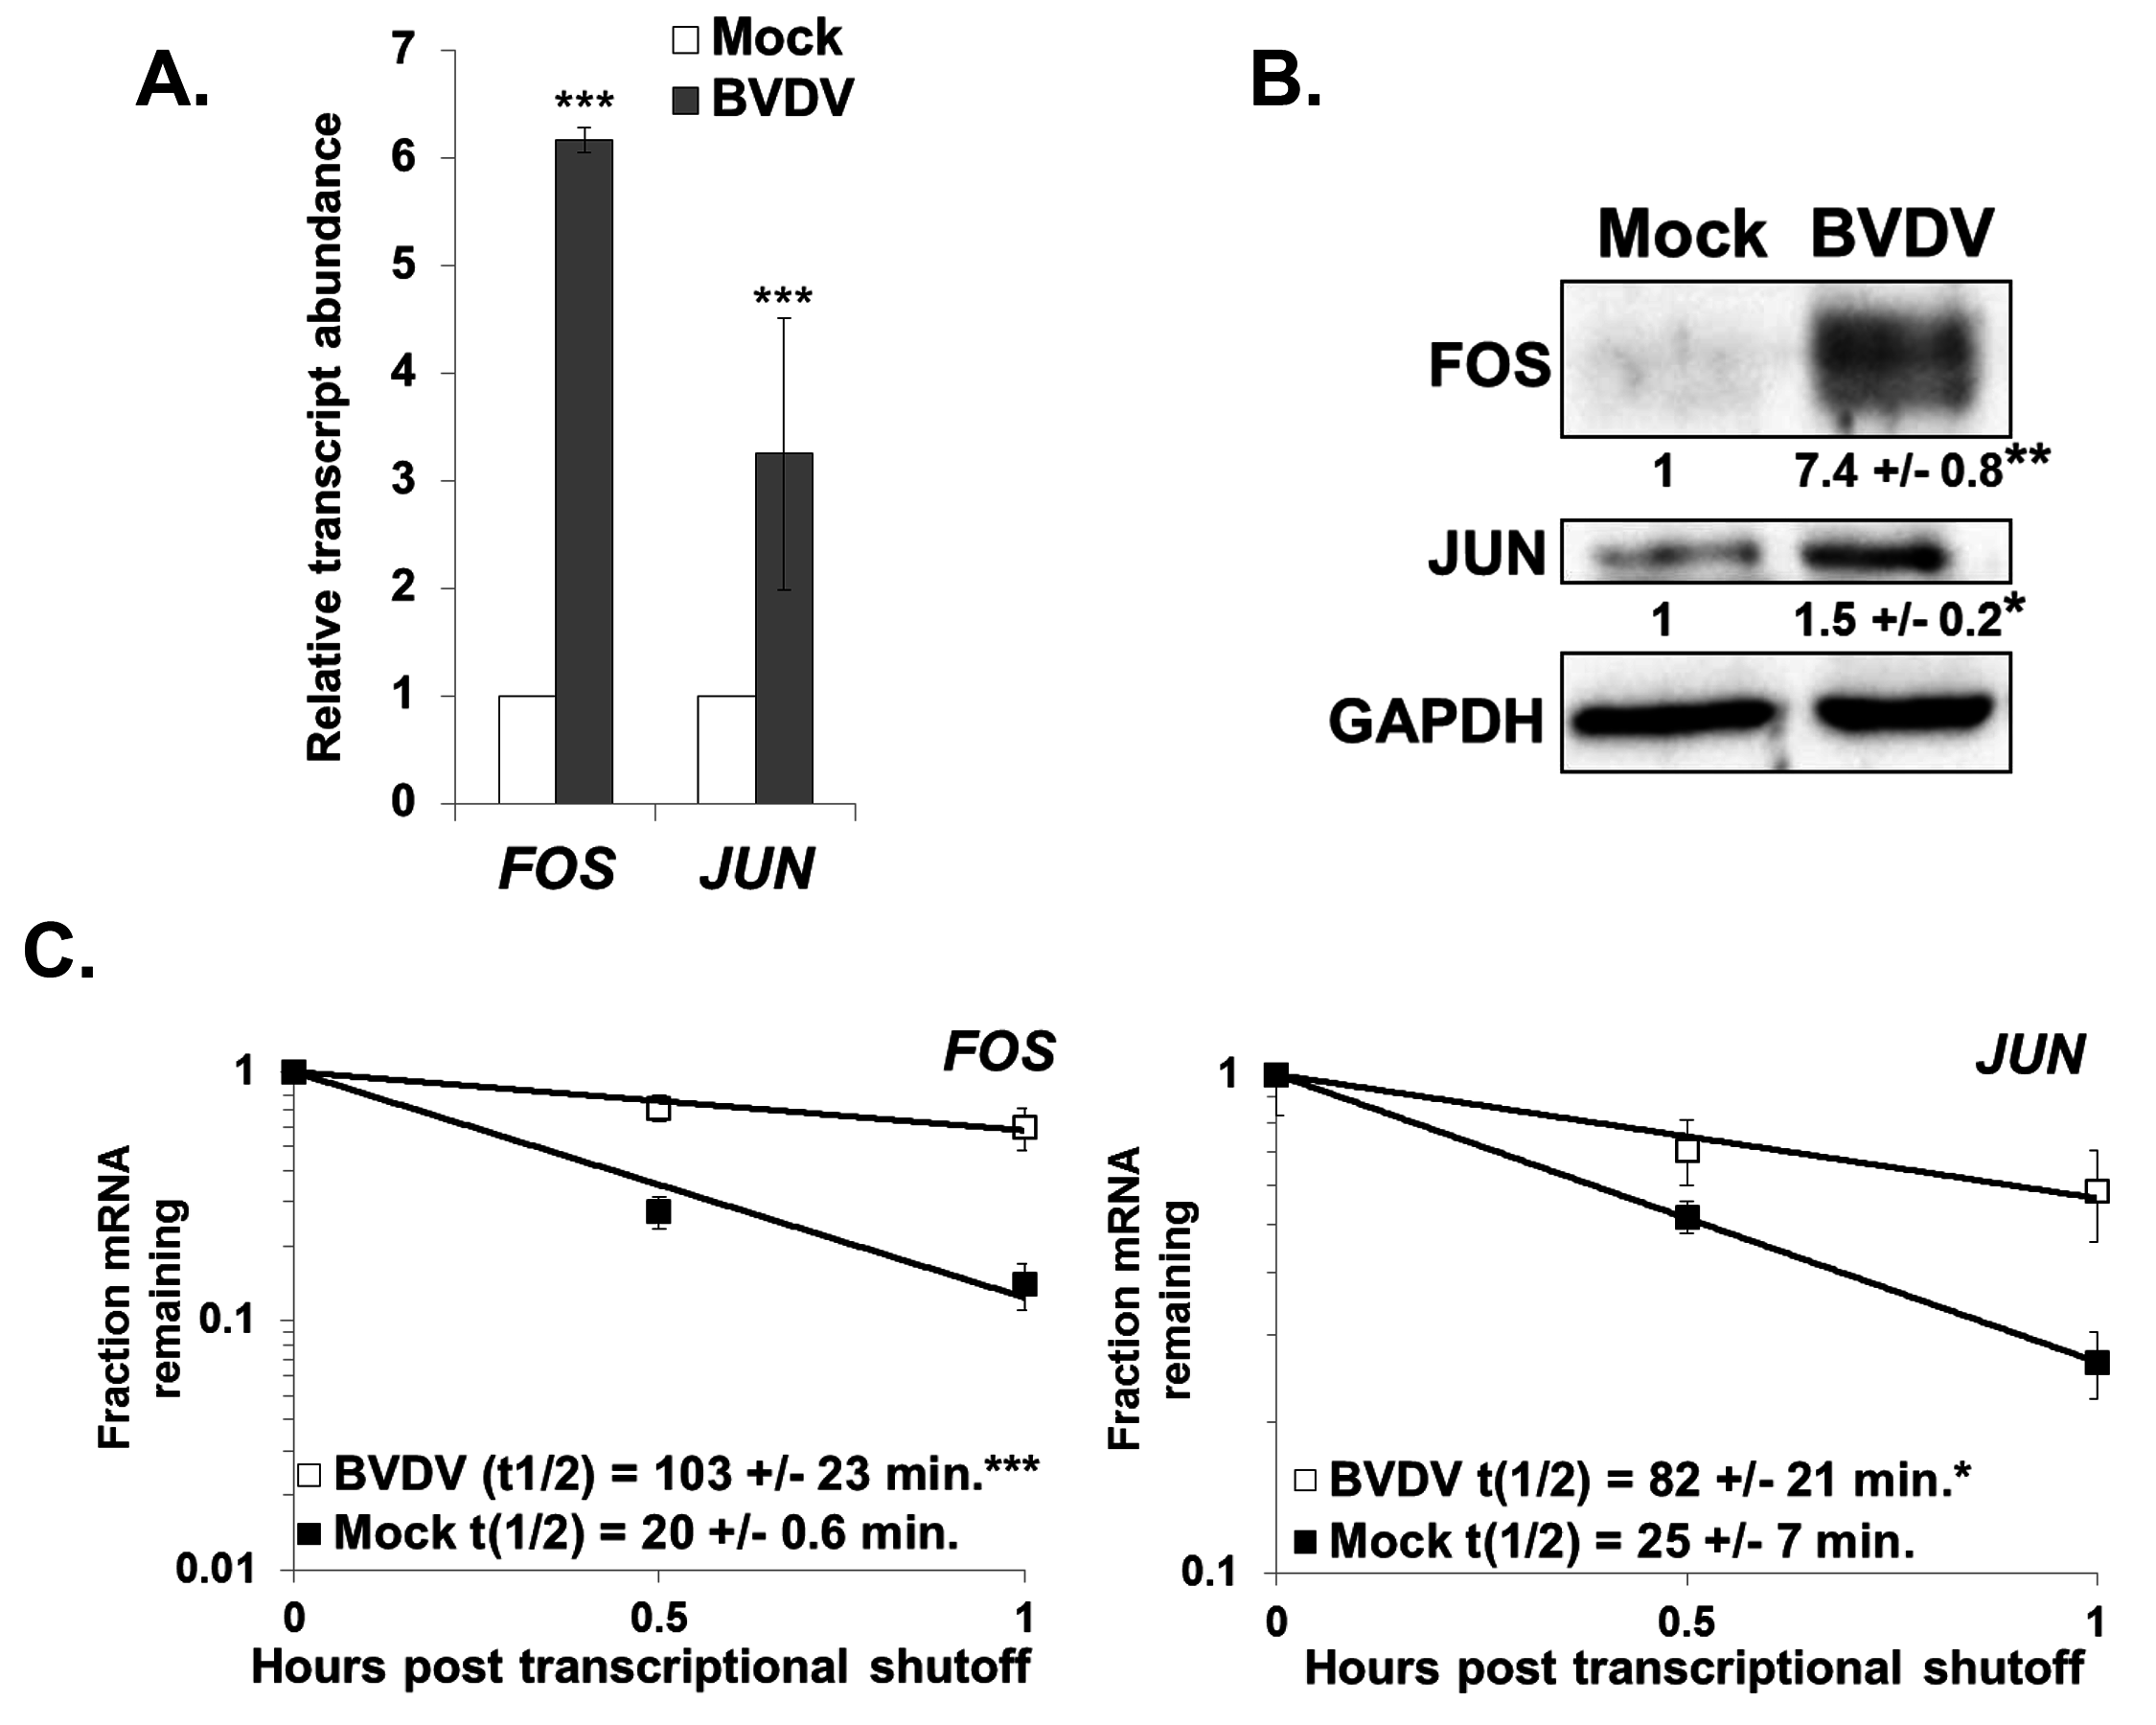 Changes in gene expression also indicate XRN1 suppression and increased mRNA stability during BVDV infection.